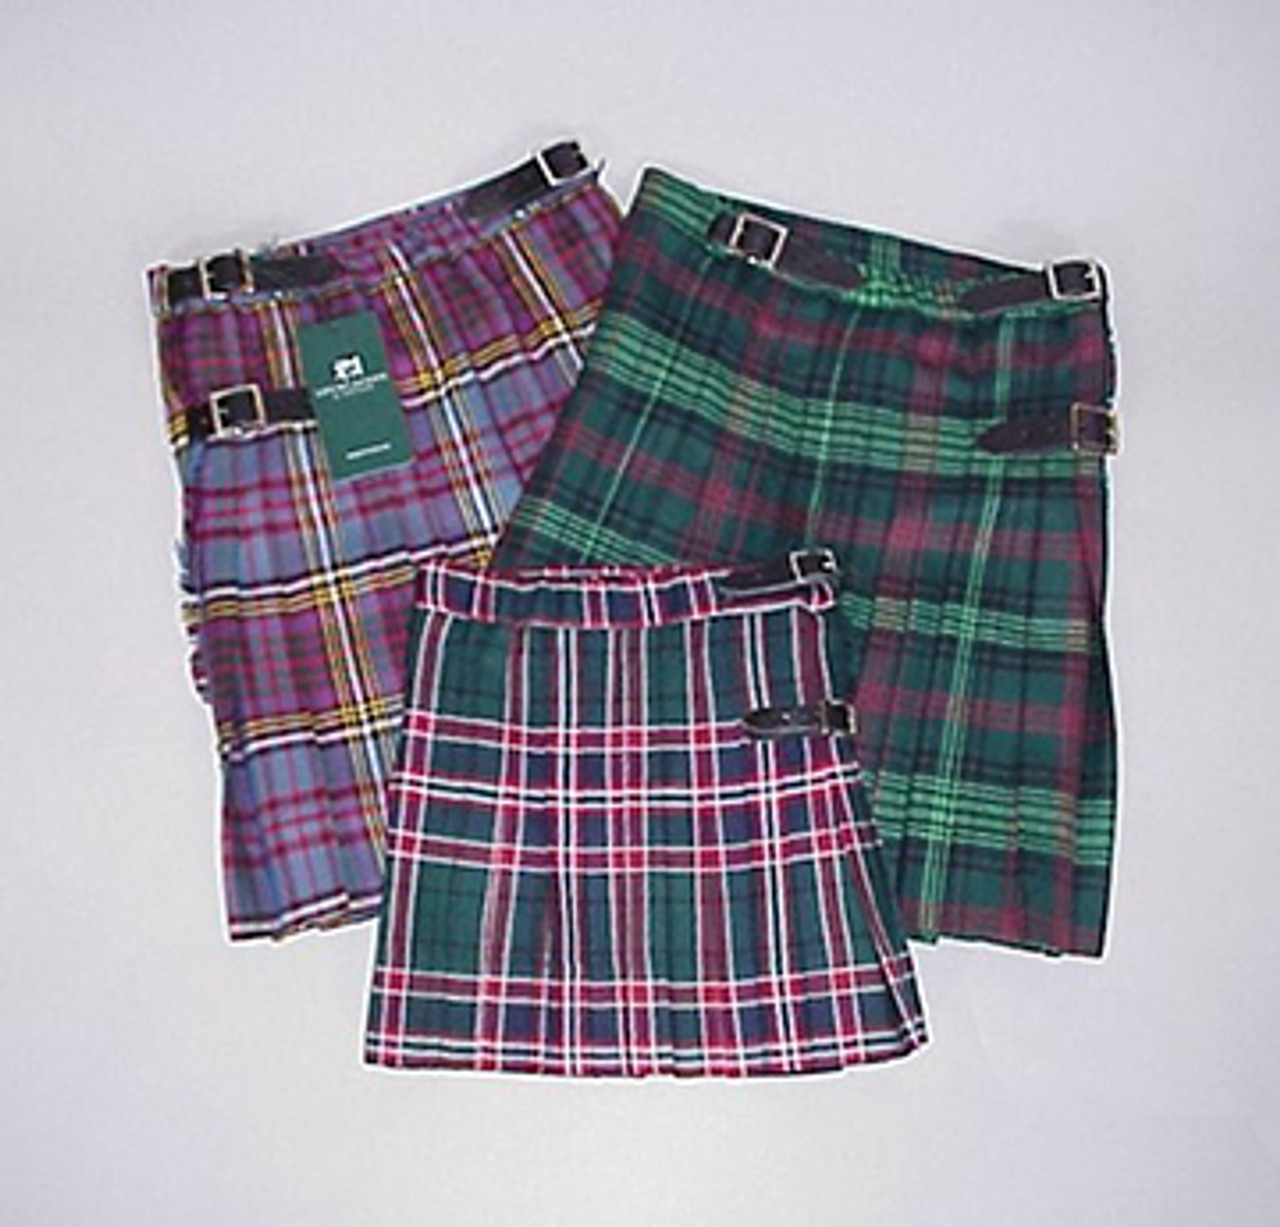 Child's Kilt 15 - 17 Inches Long - MacDonnell to Young